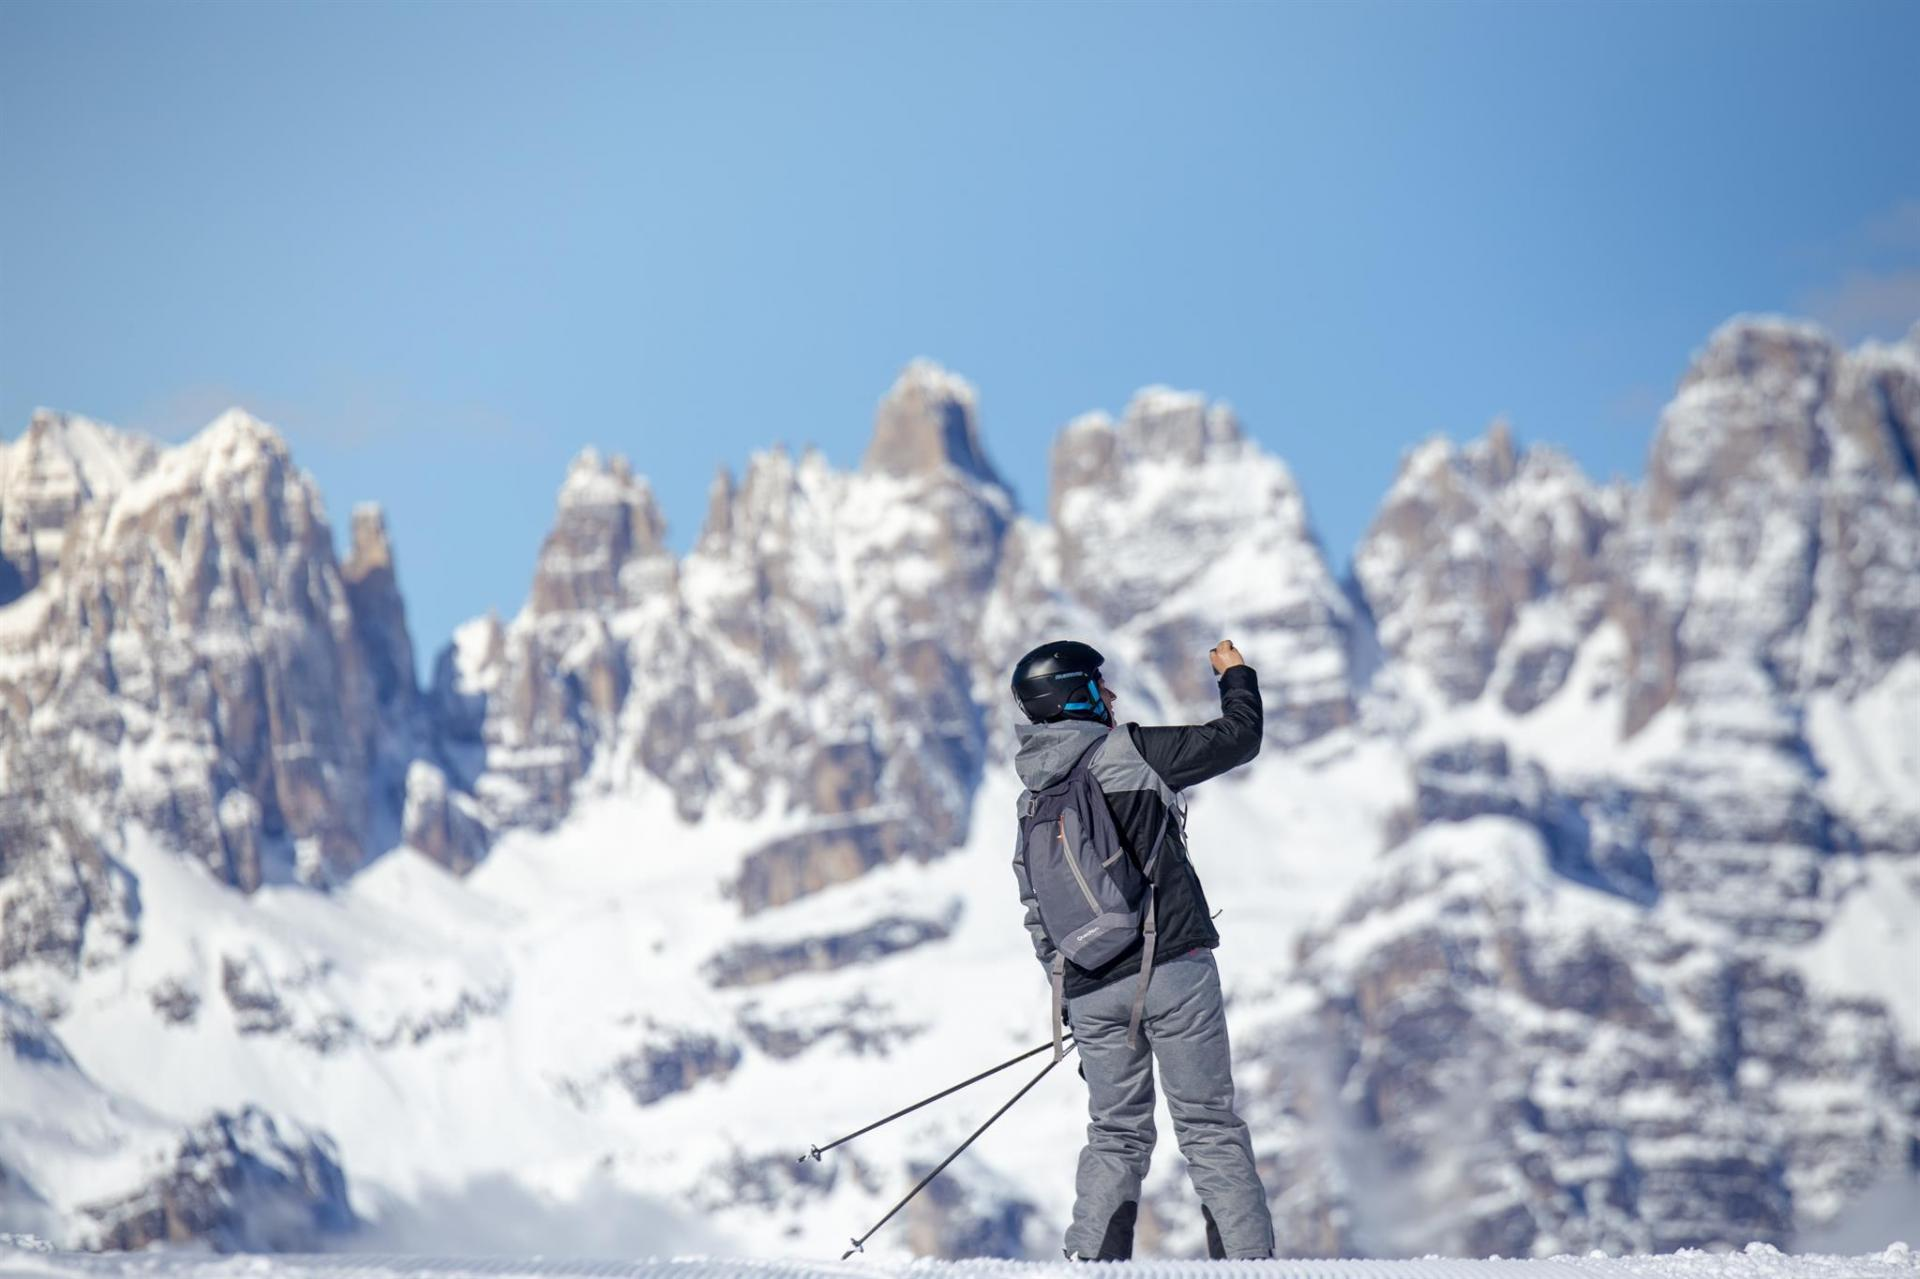 MY FUN SKI WEEK - Ski holidays including Ski Pass Paganella